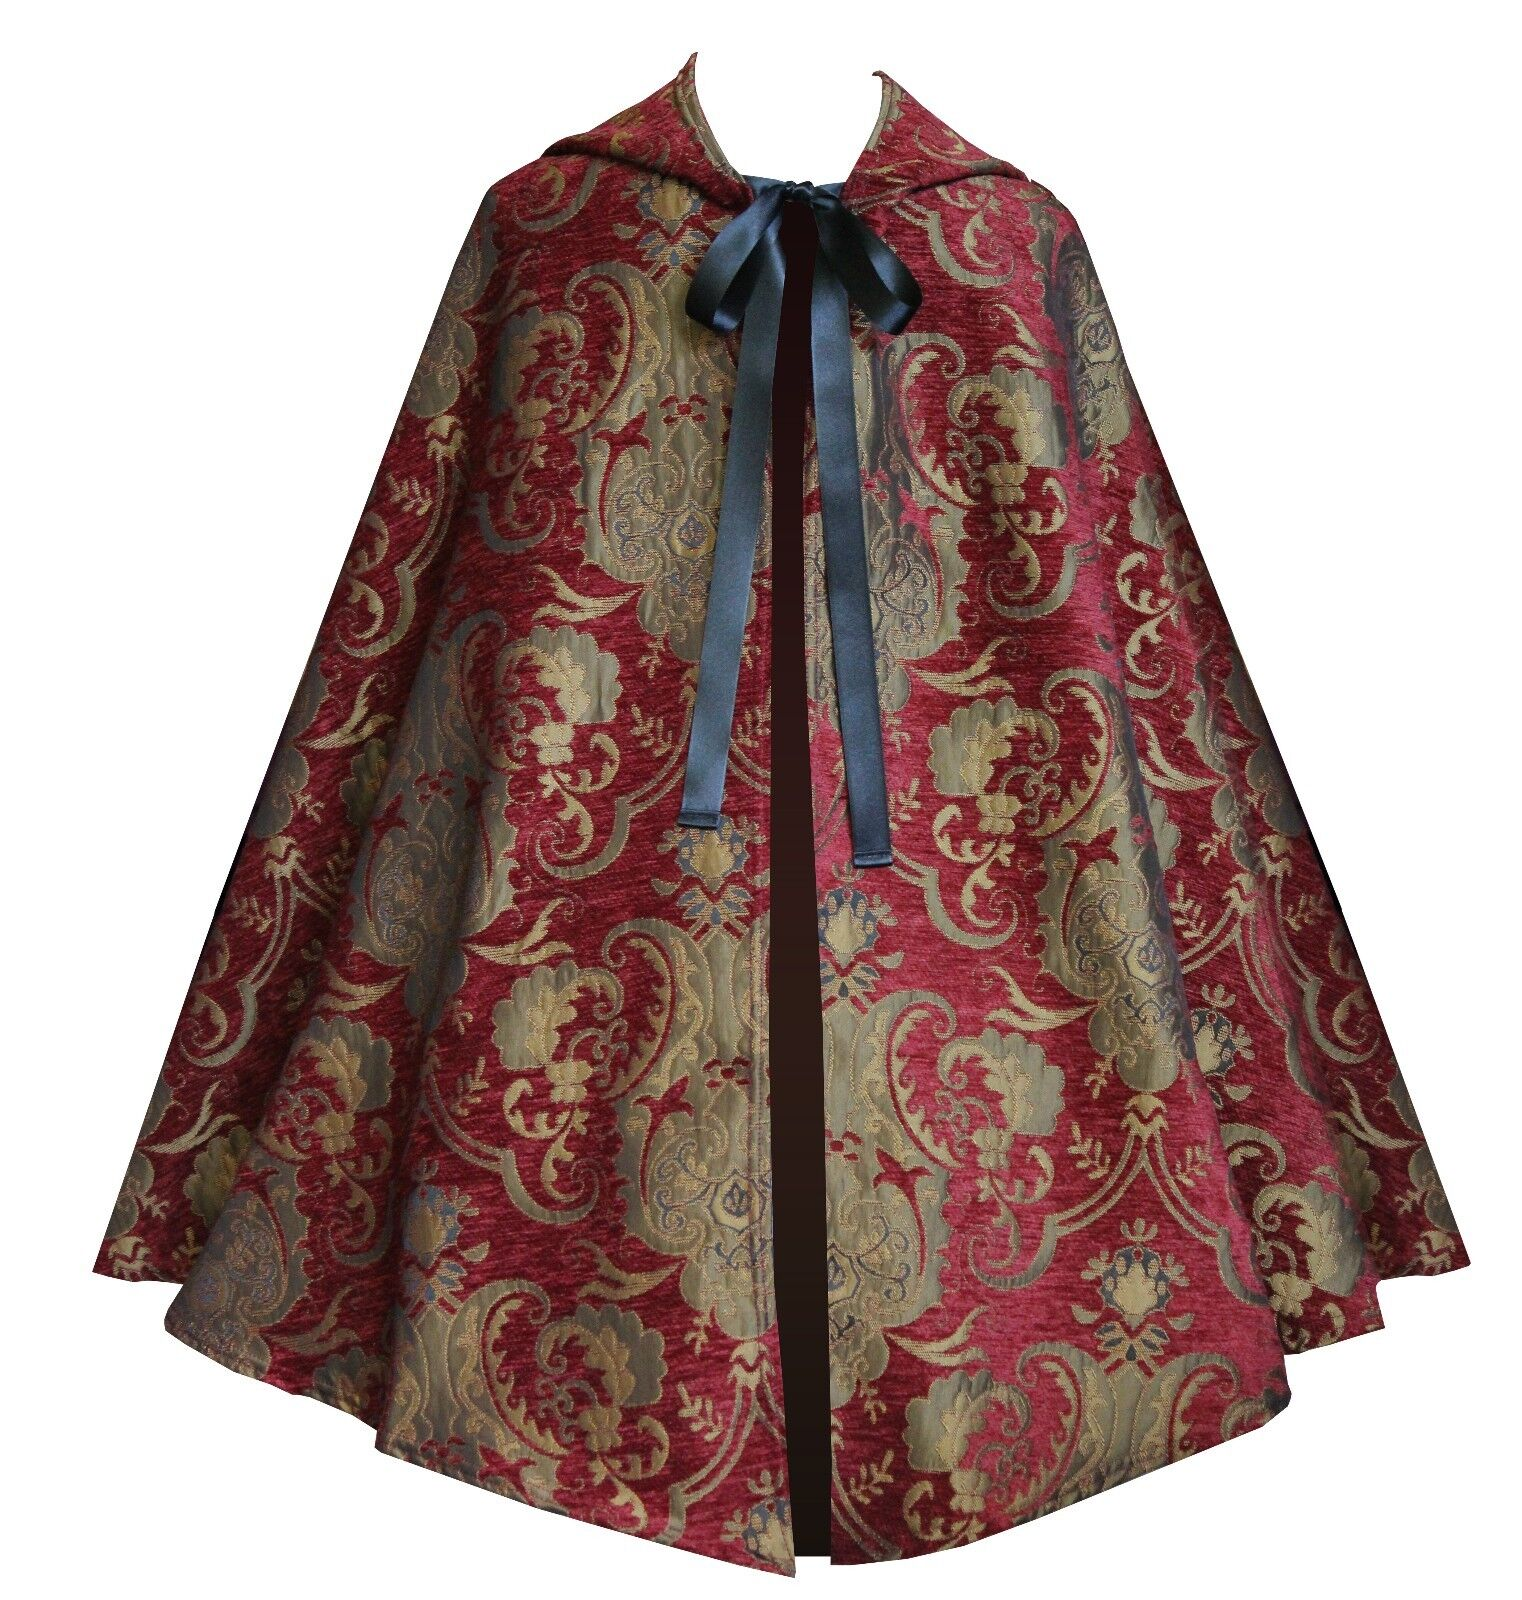 Victorian Gothic Renaissance Steampunk Pirate Brocade Hooded Cape Cloak Royal